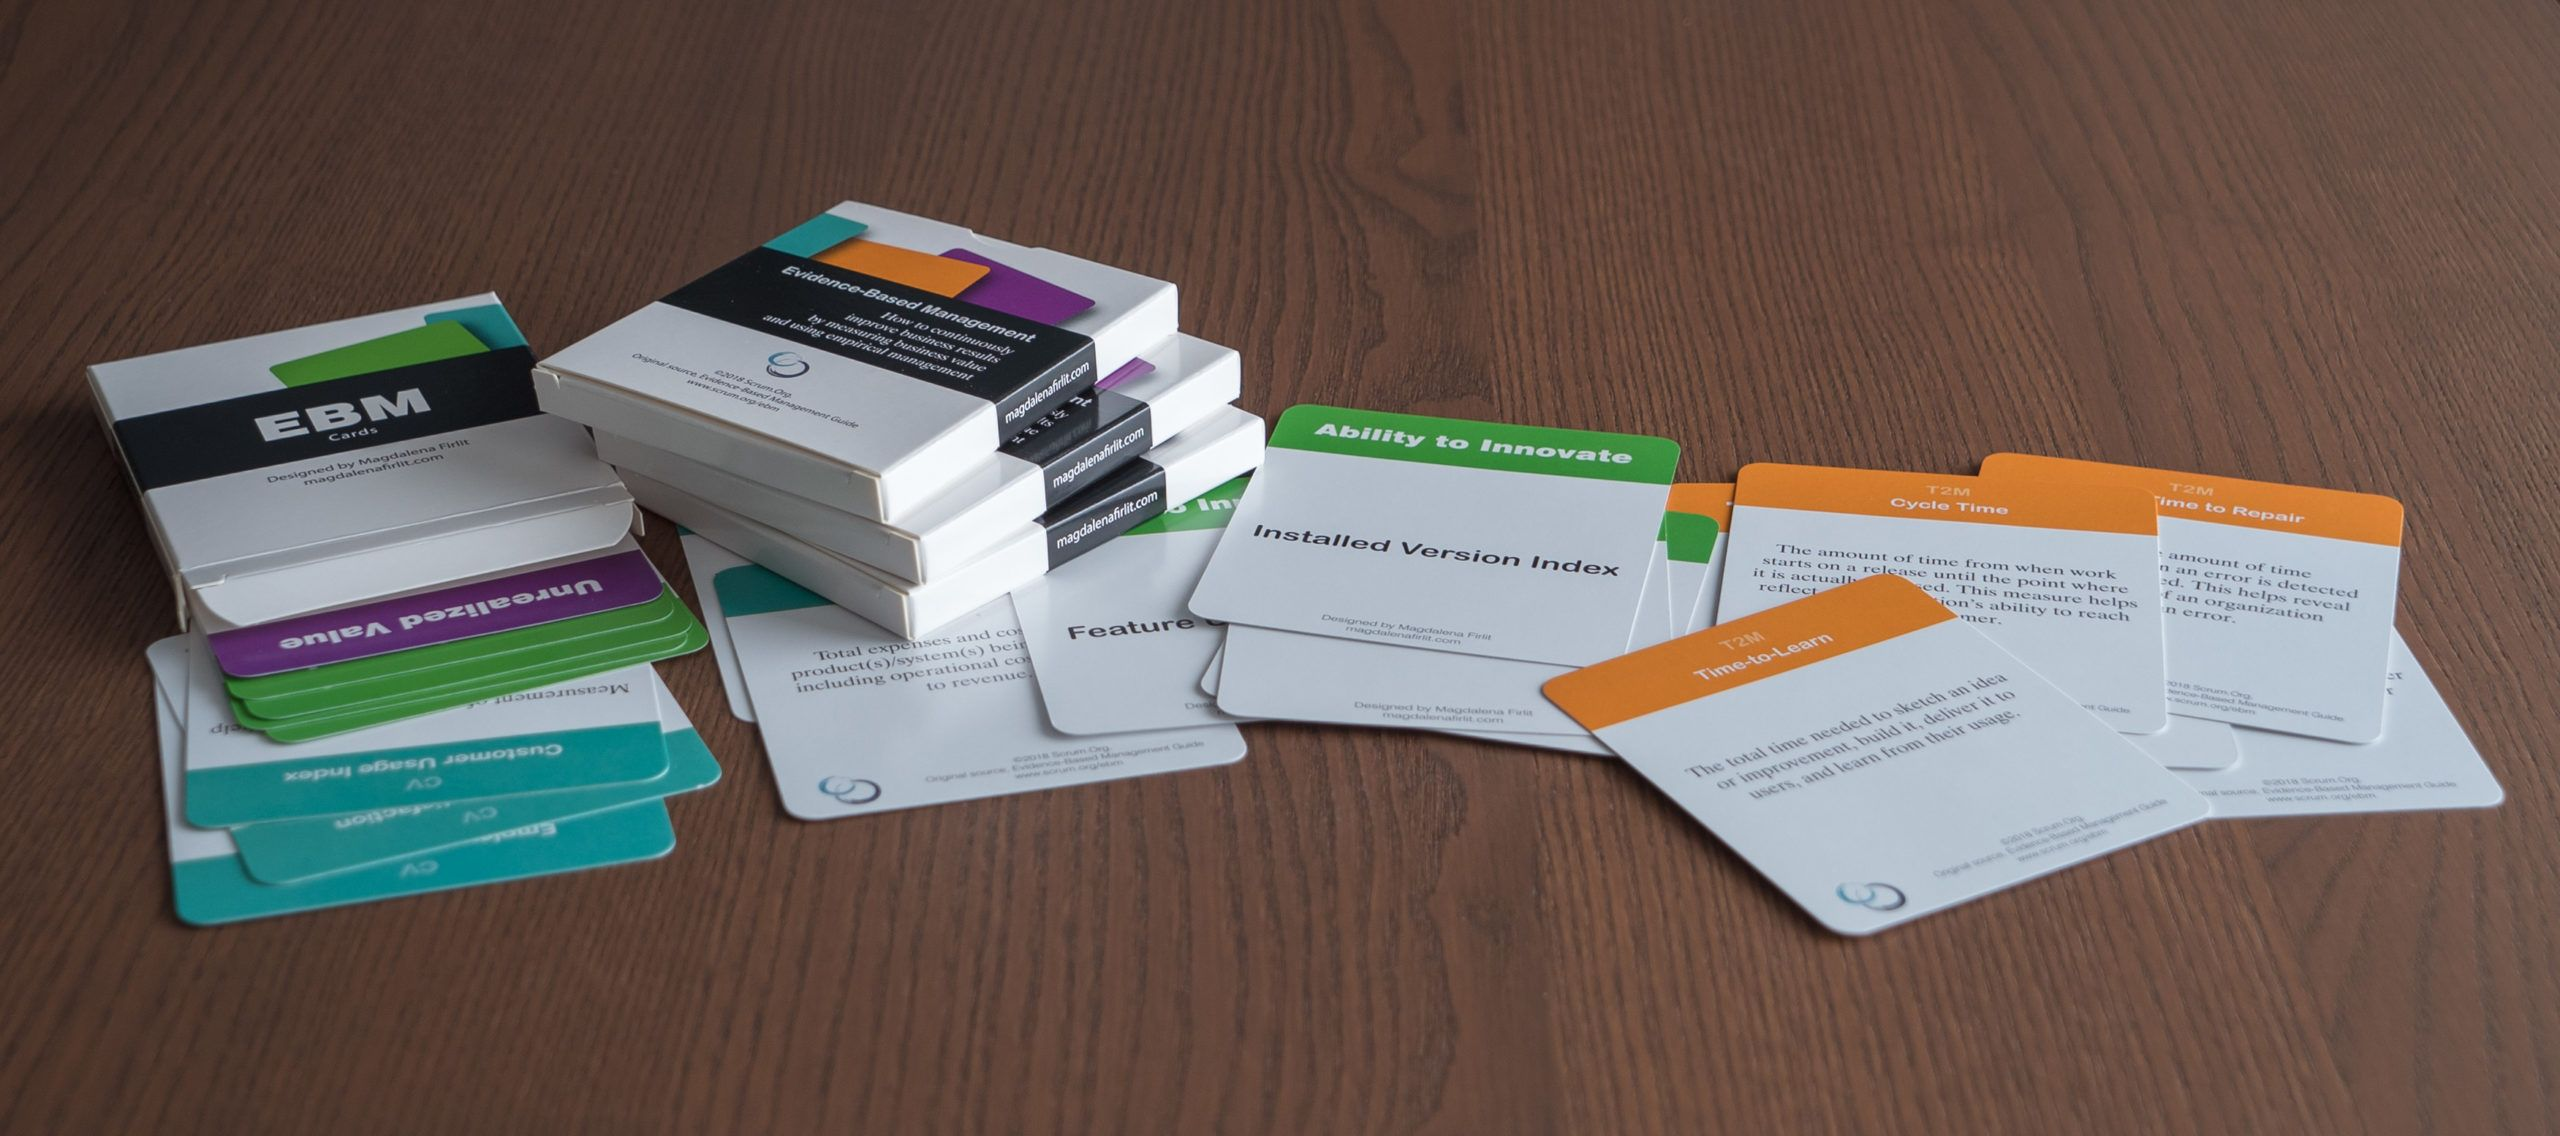 Evidence Based Management cards